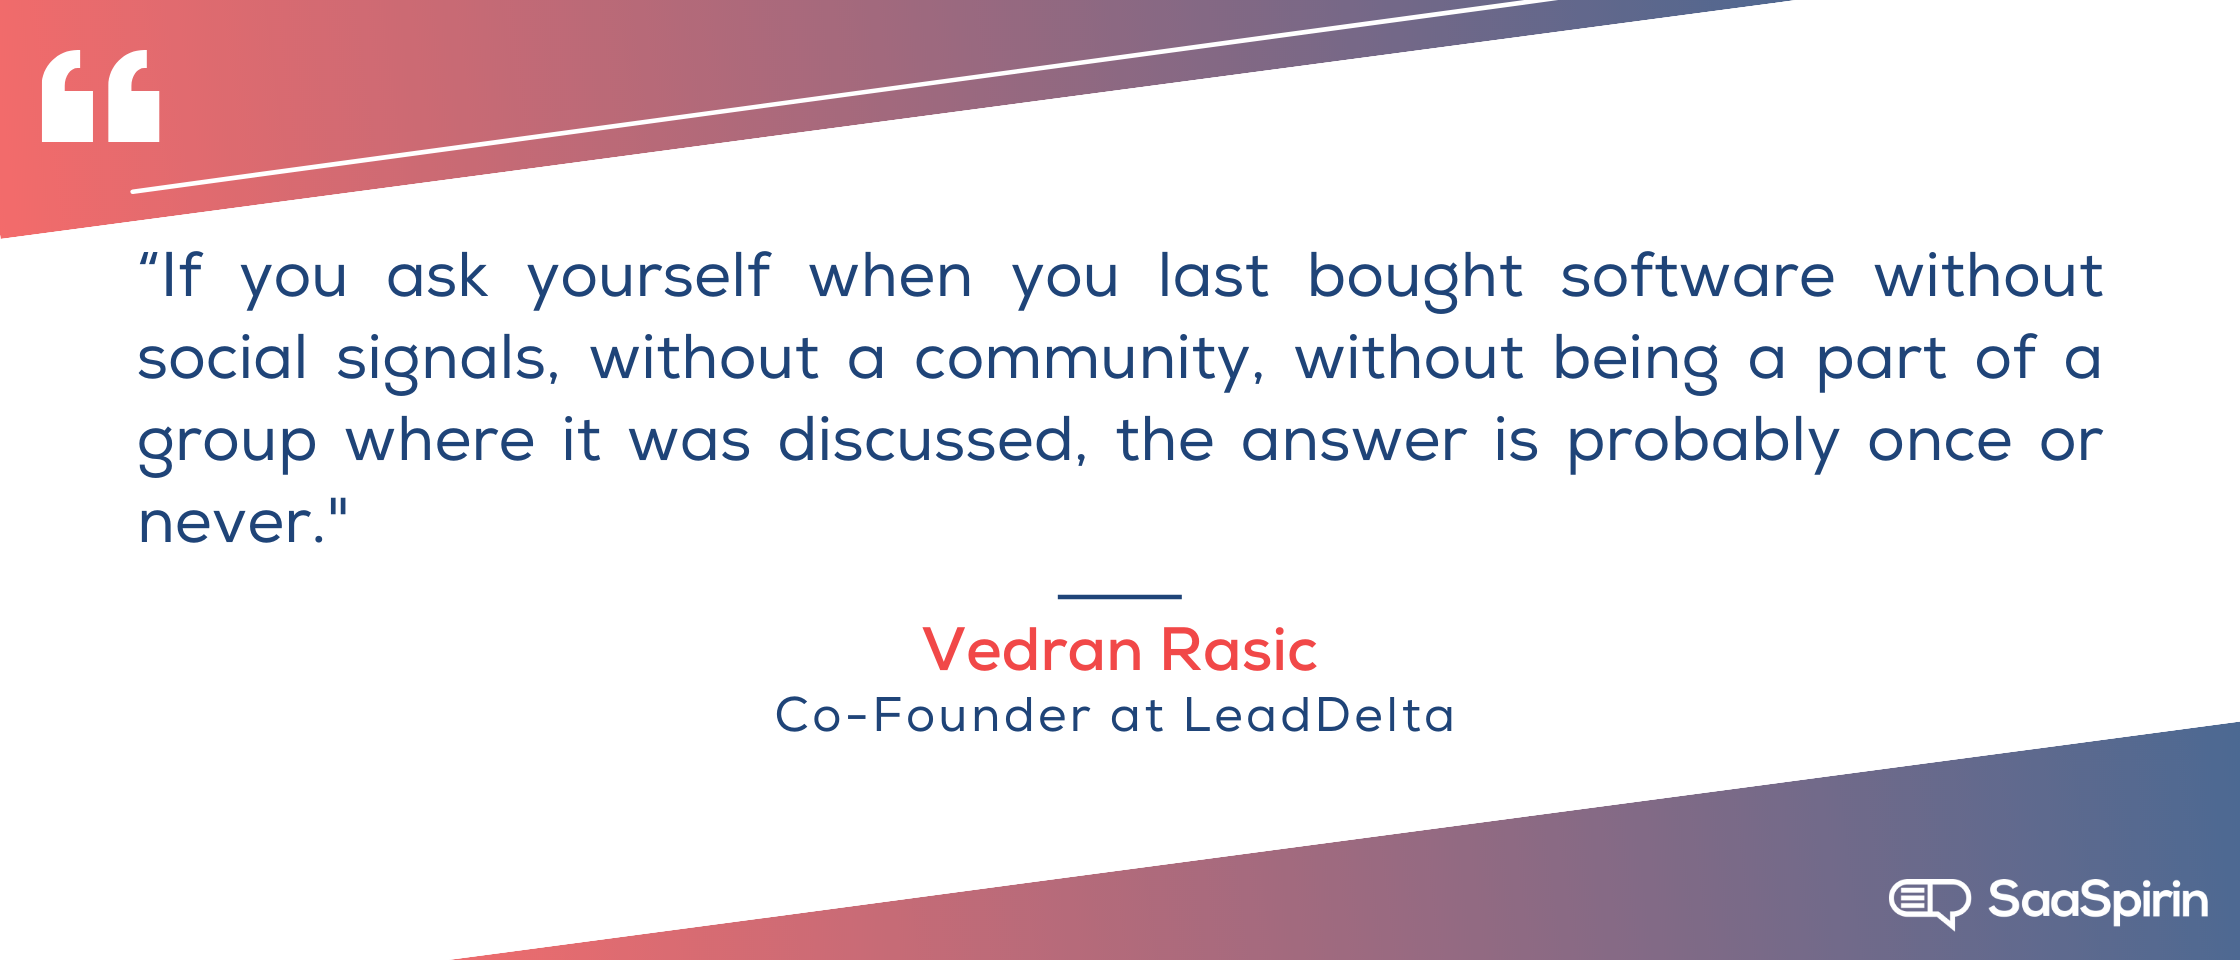 If-you-ask-yourself-when-you-last-bought-software-without-social-signals-without-a-community-without-being-a-part-of-a-group-where-it-was-discussed-the-answer-is-probably-once-or-never.png